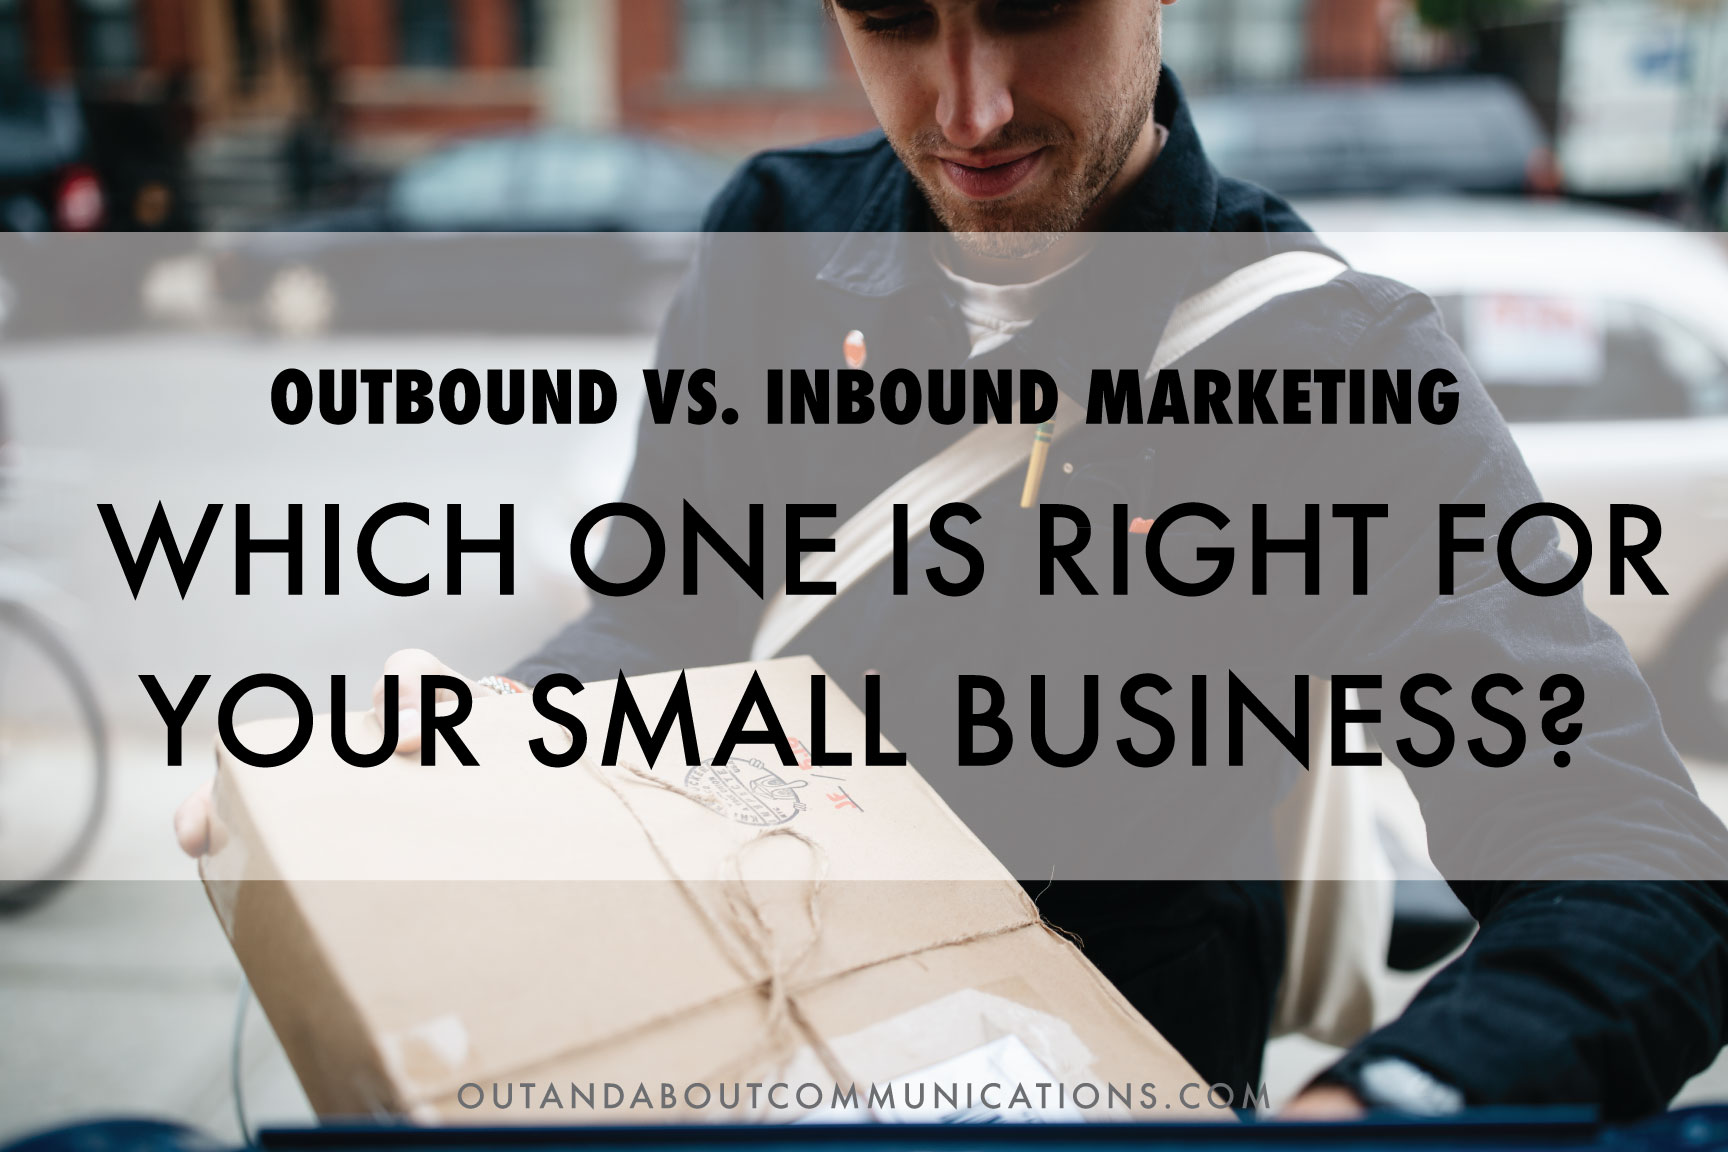 Outbound vs. Inbound Marketing- Which Is Right For Your Small Business?